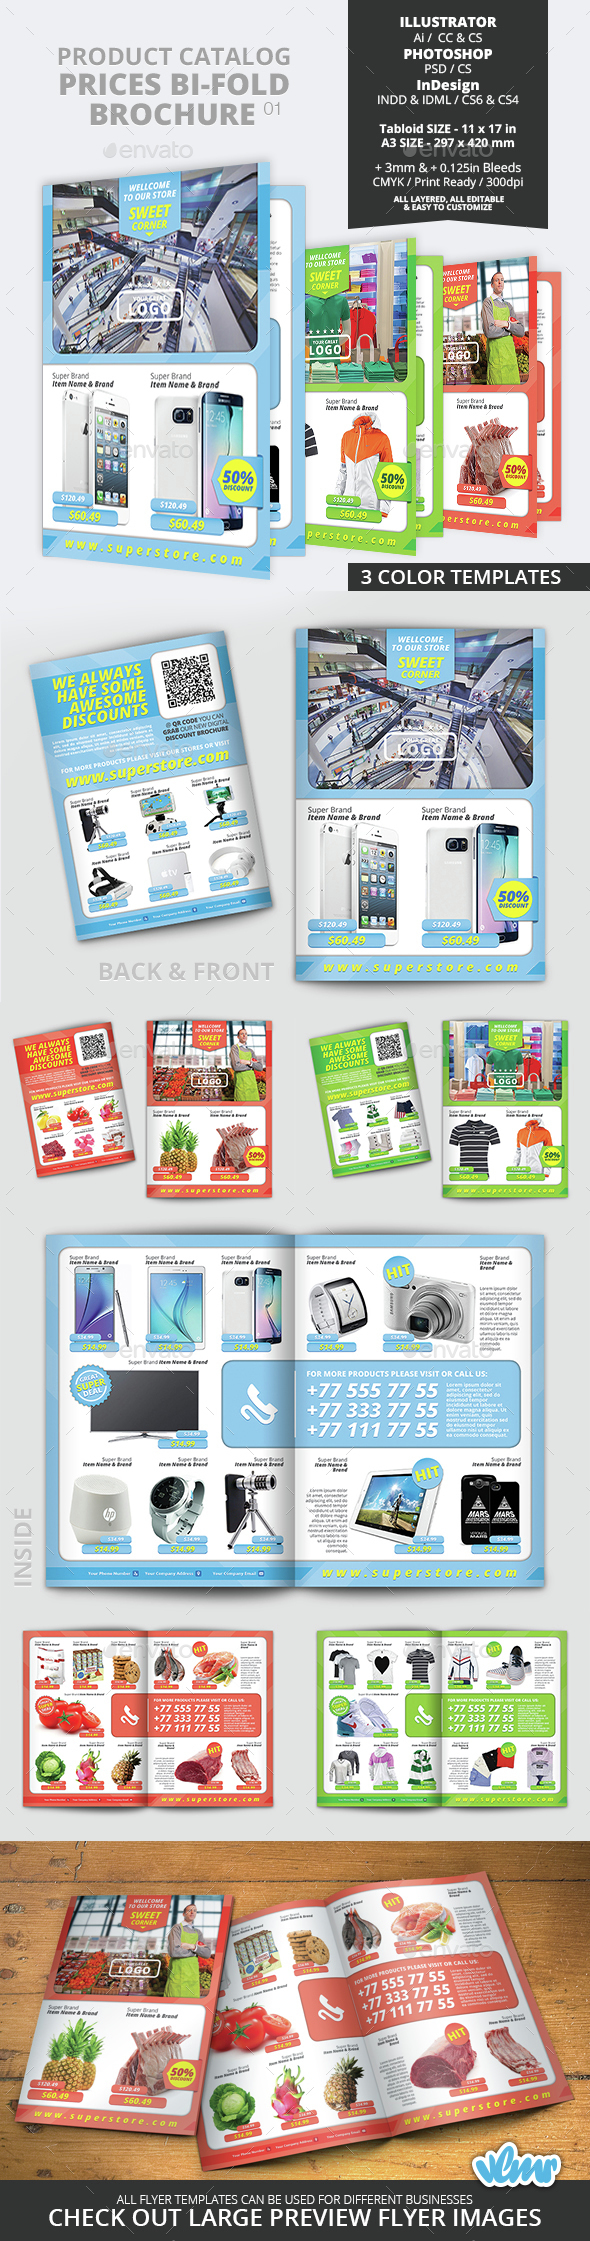 Product Catalog Prices Bi Fold Brochure 01 - Catalogs Brochures